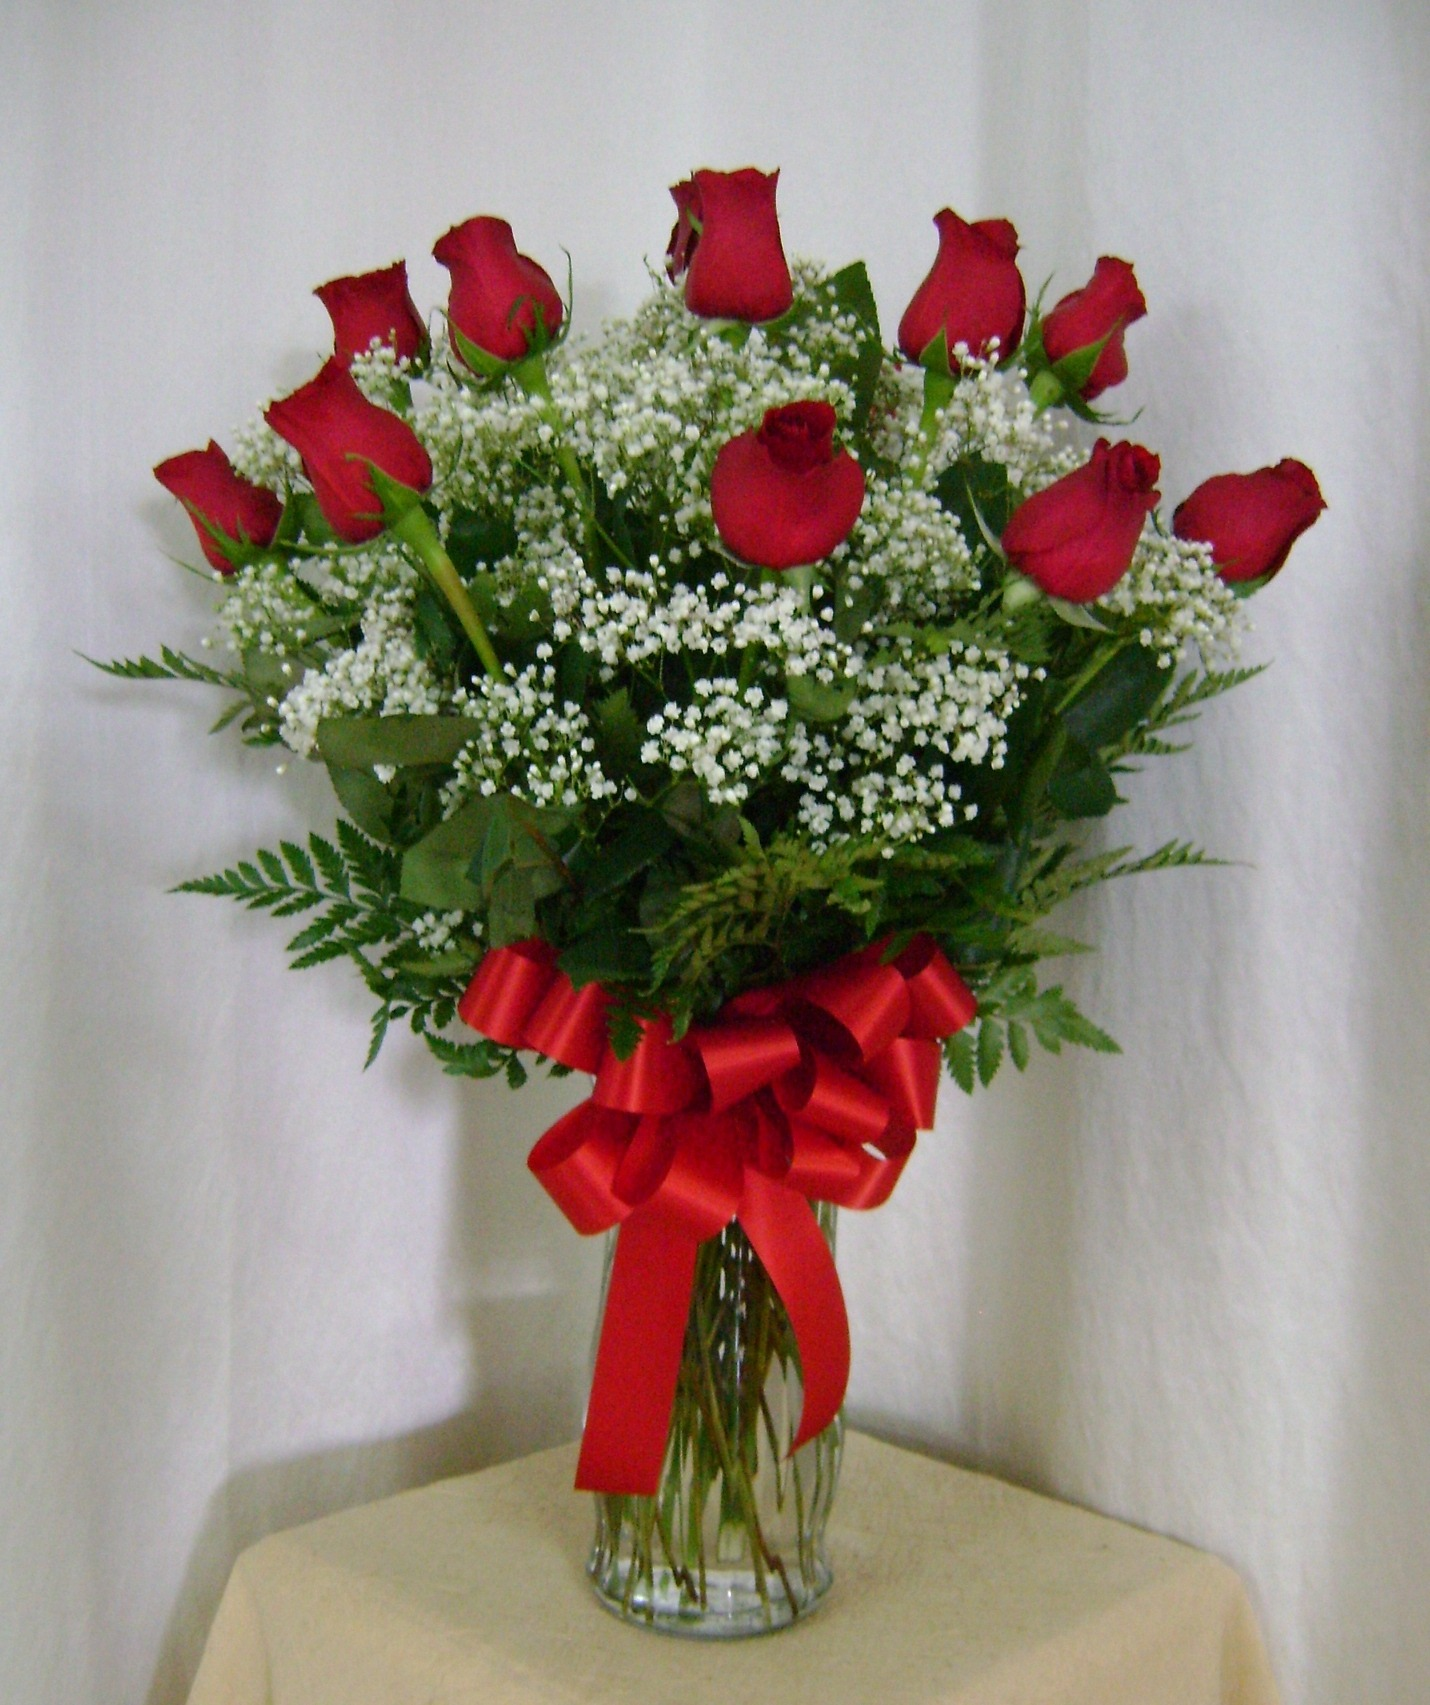 Rosen In Vase Classic Red Rose Vase Long Stems Flowers Boutique